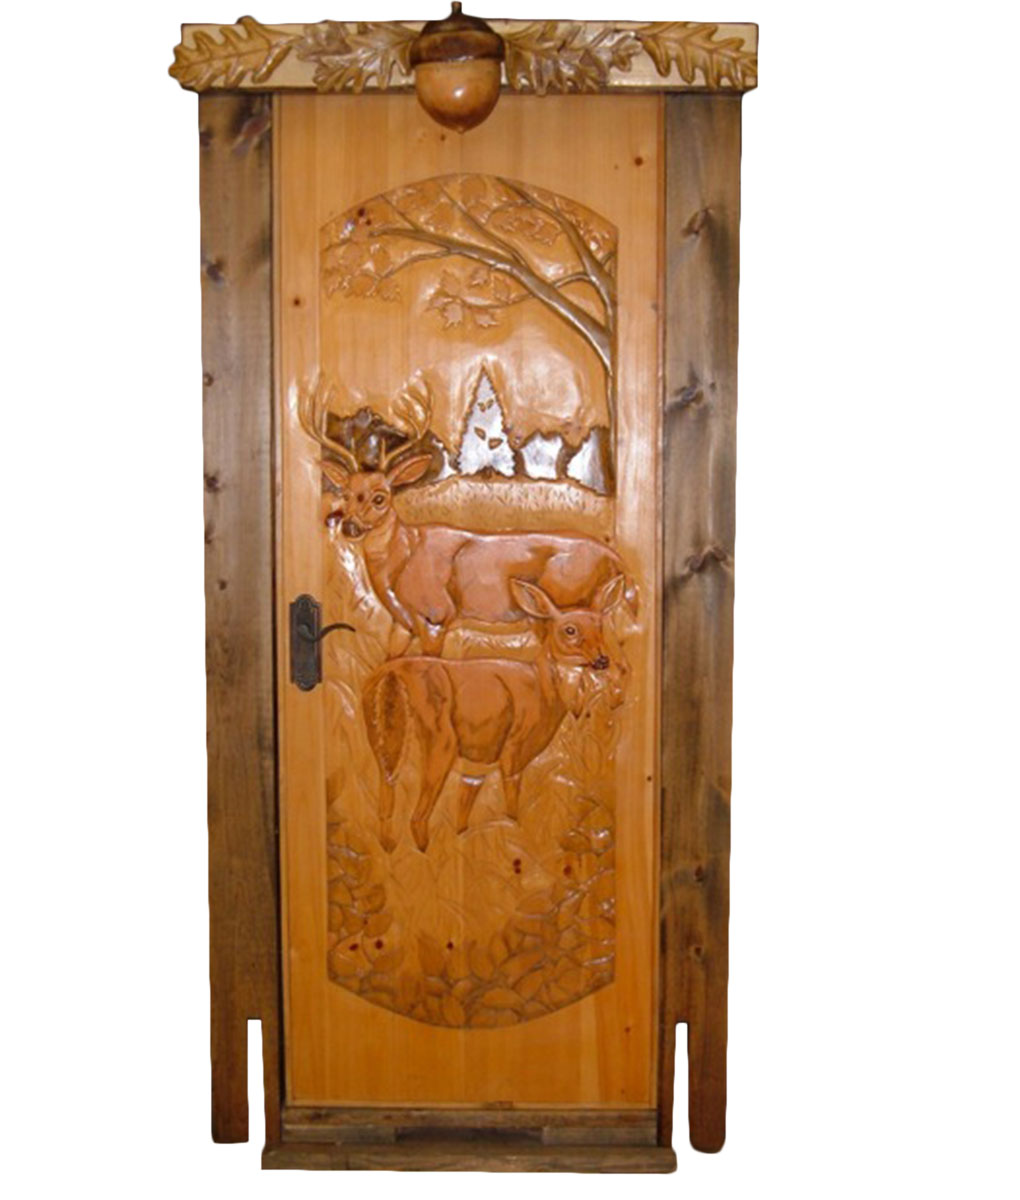 Rustic Wood Interior Doors solid wood entry & interior doors archives - rustic artistry